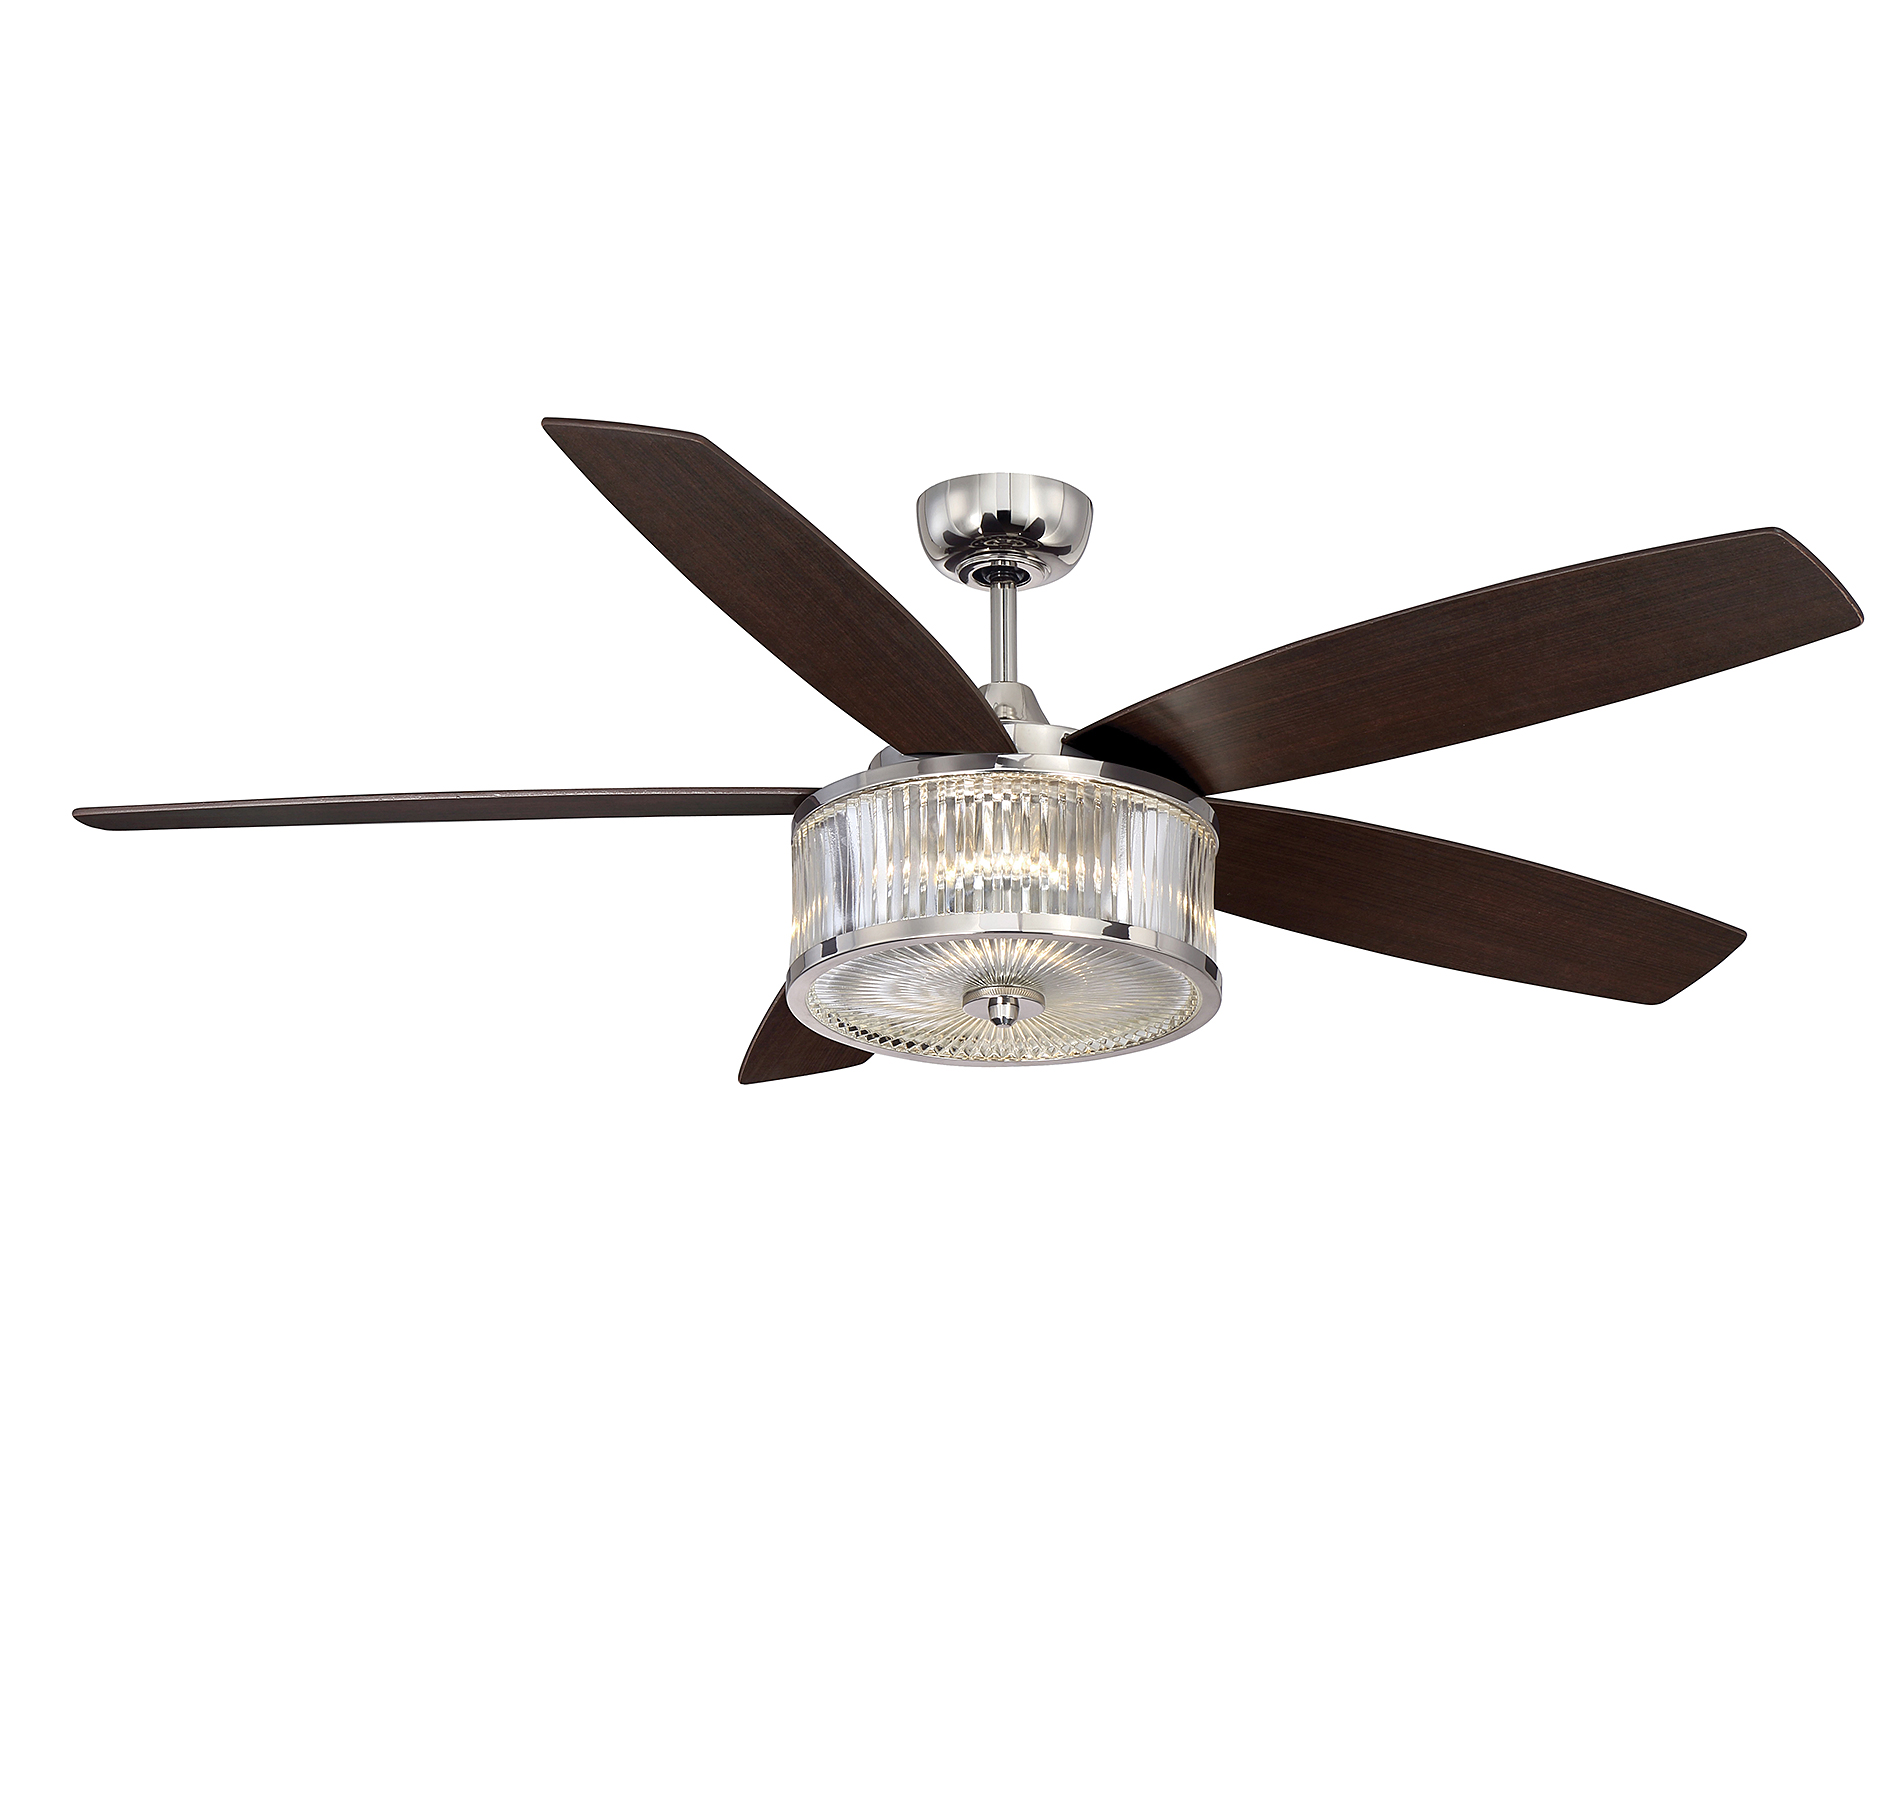 Phoebe ceiling fan with light by savoy house 56 180 5cn 109 phoebe ceiling fan with light by savoy house aloadofball Gallery